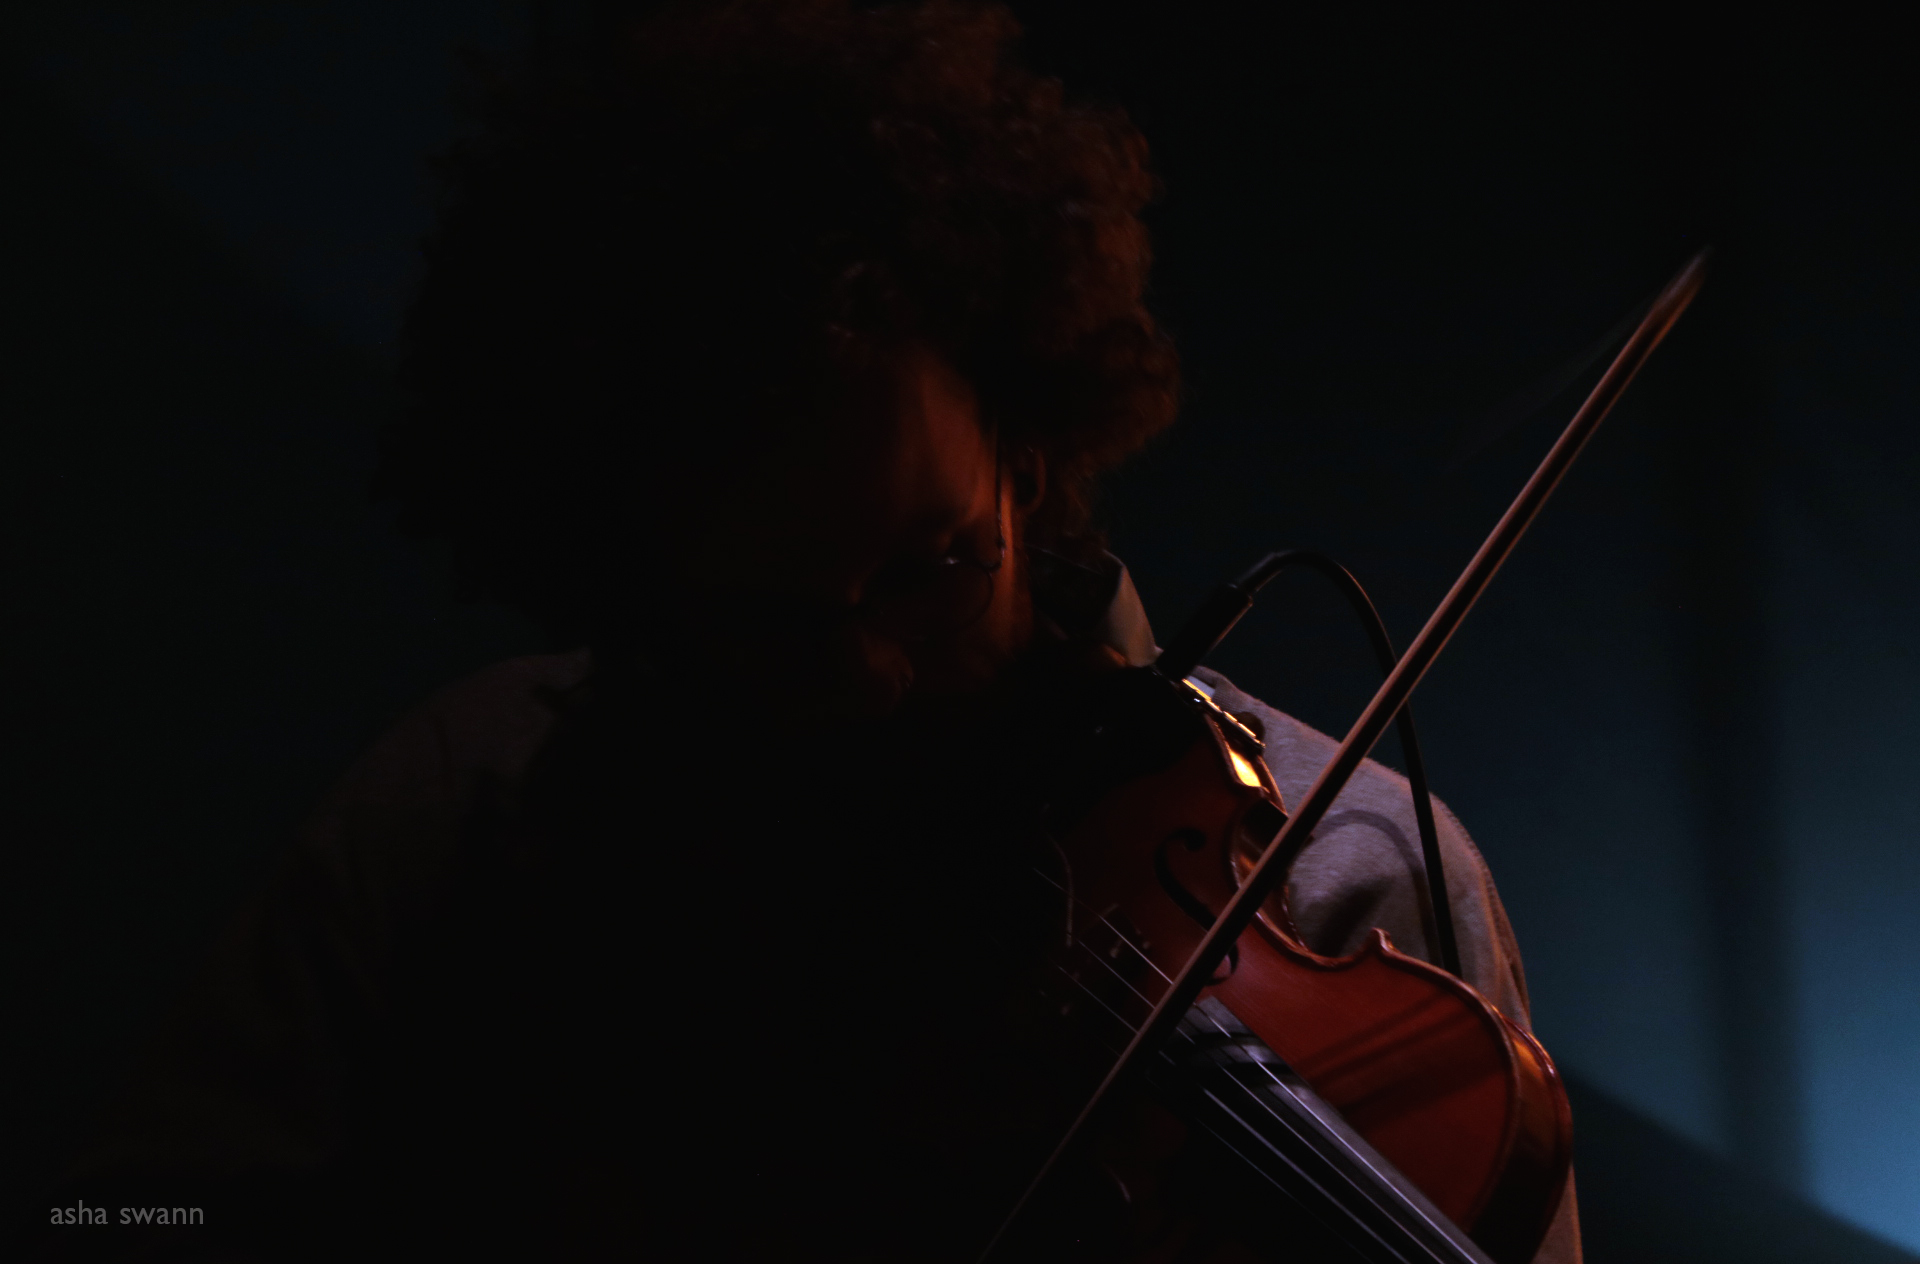 sol the violinist at bar robo